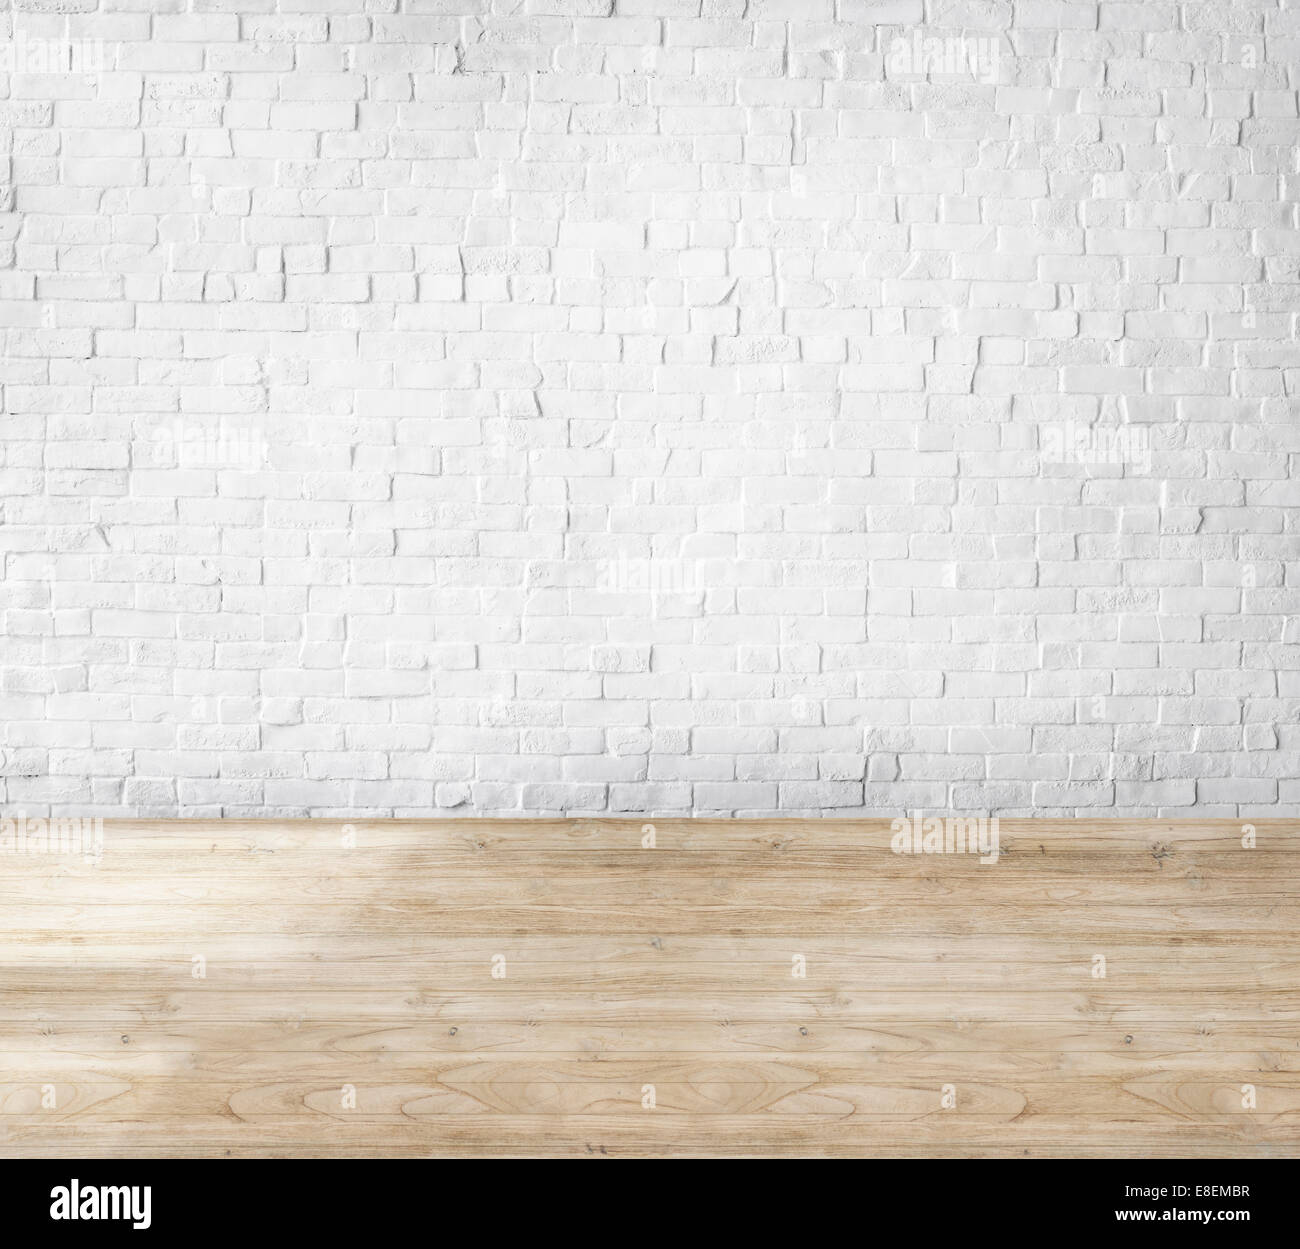 white brick wall wooden floor stock photos white brick wall wooden